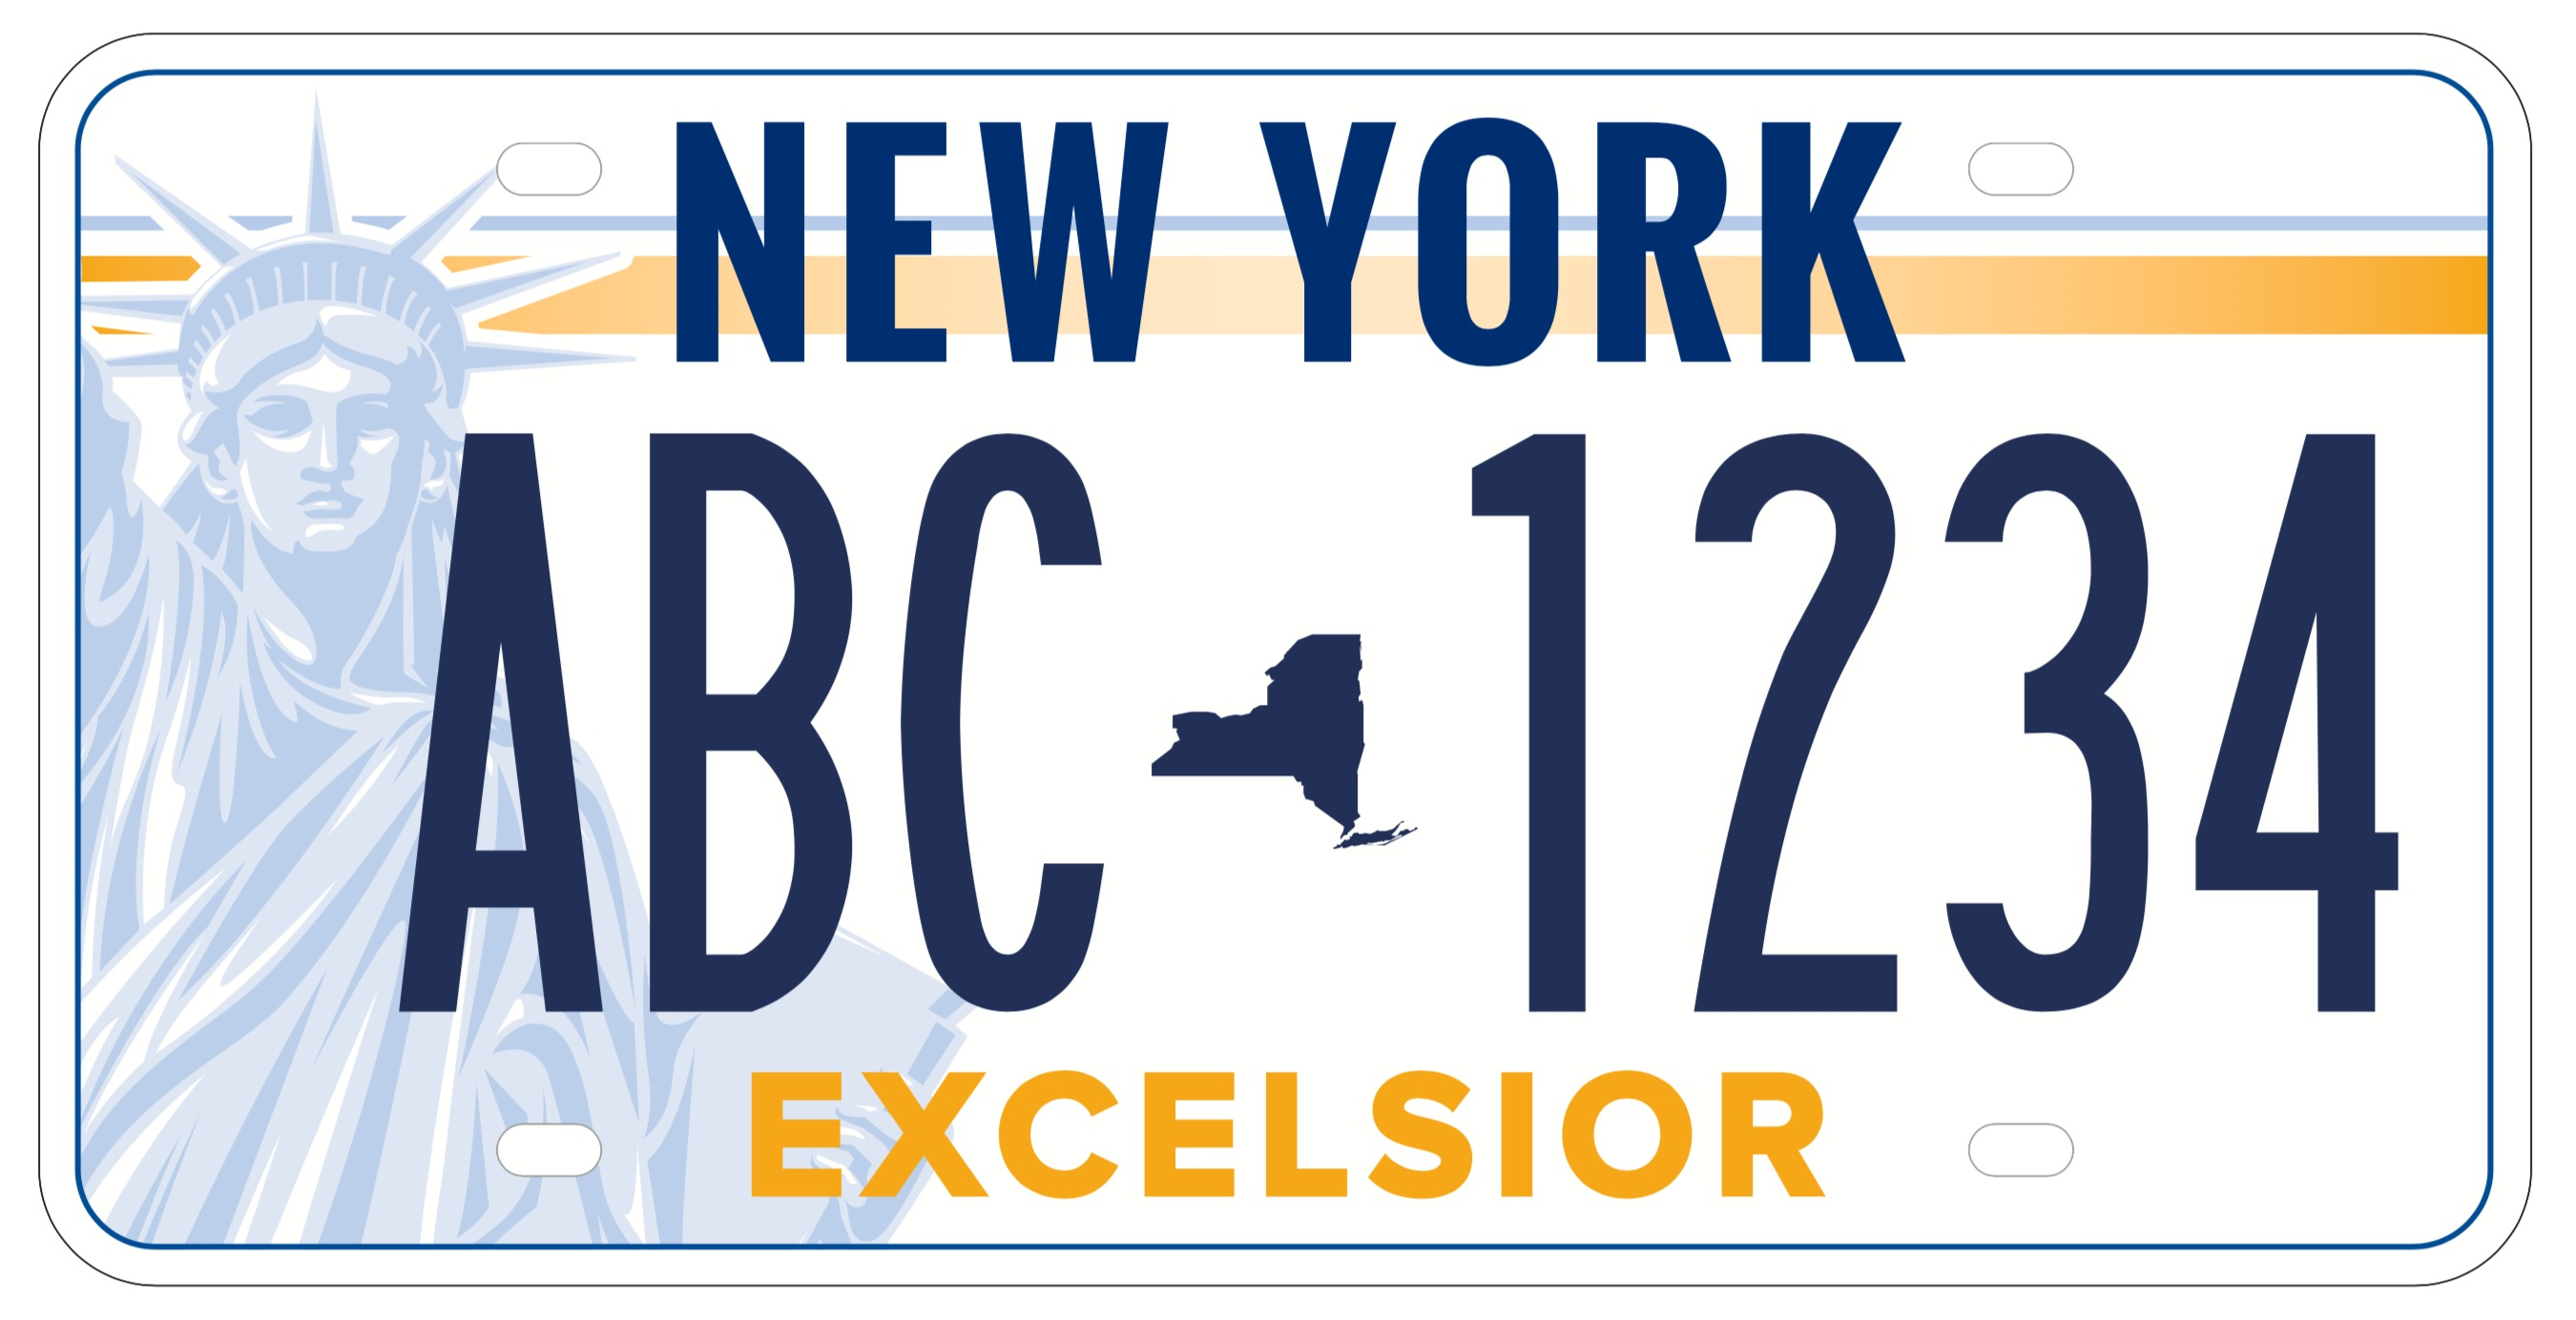 New York ends contract with company linked to peeling license plates